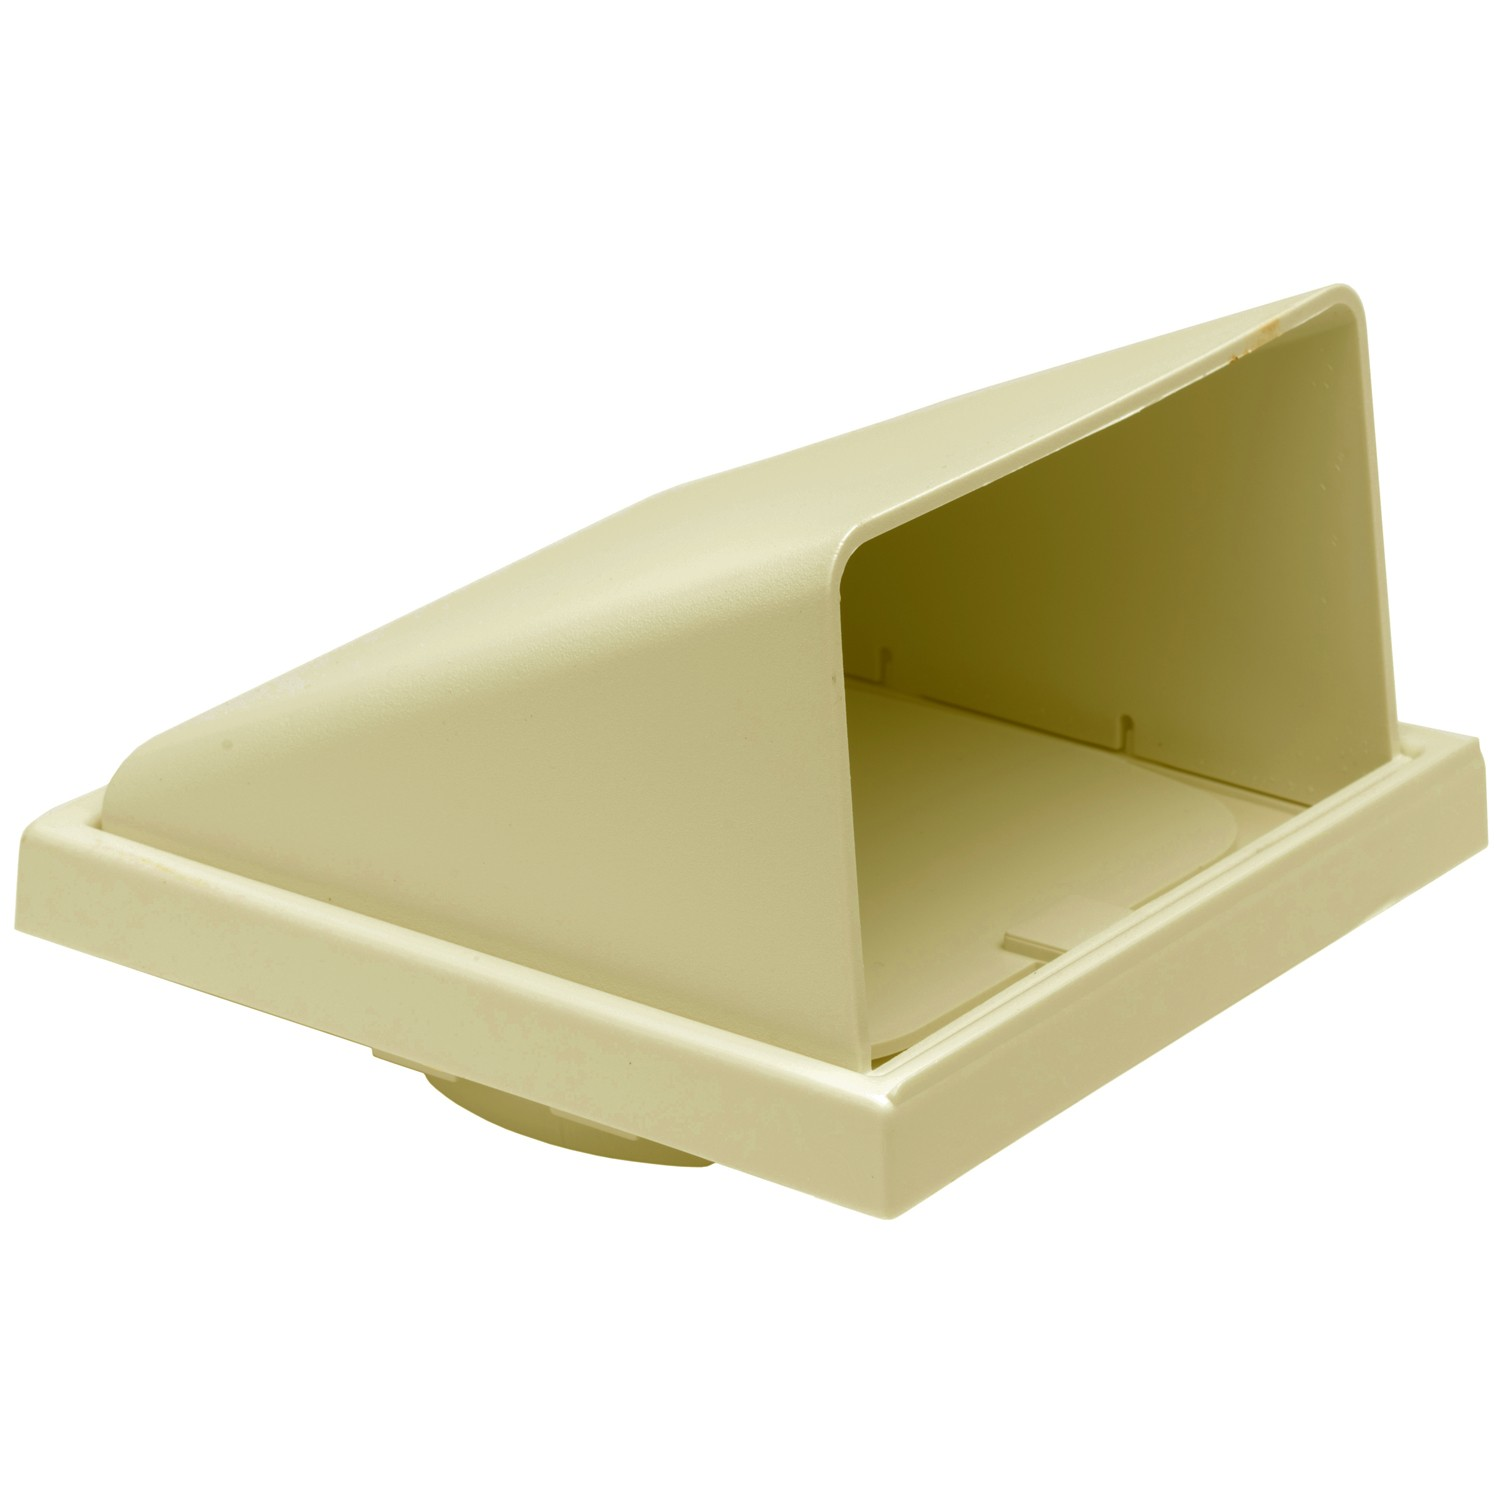 Manrose Round Ducting Pipe Wall Hood Cowled Outlet - Cream, 150mm